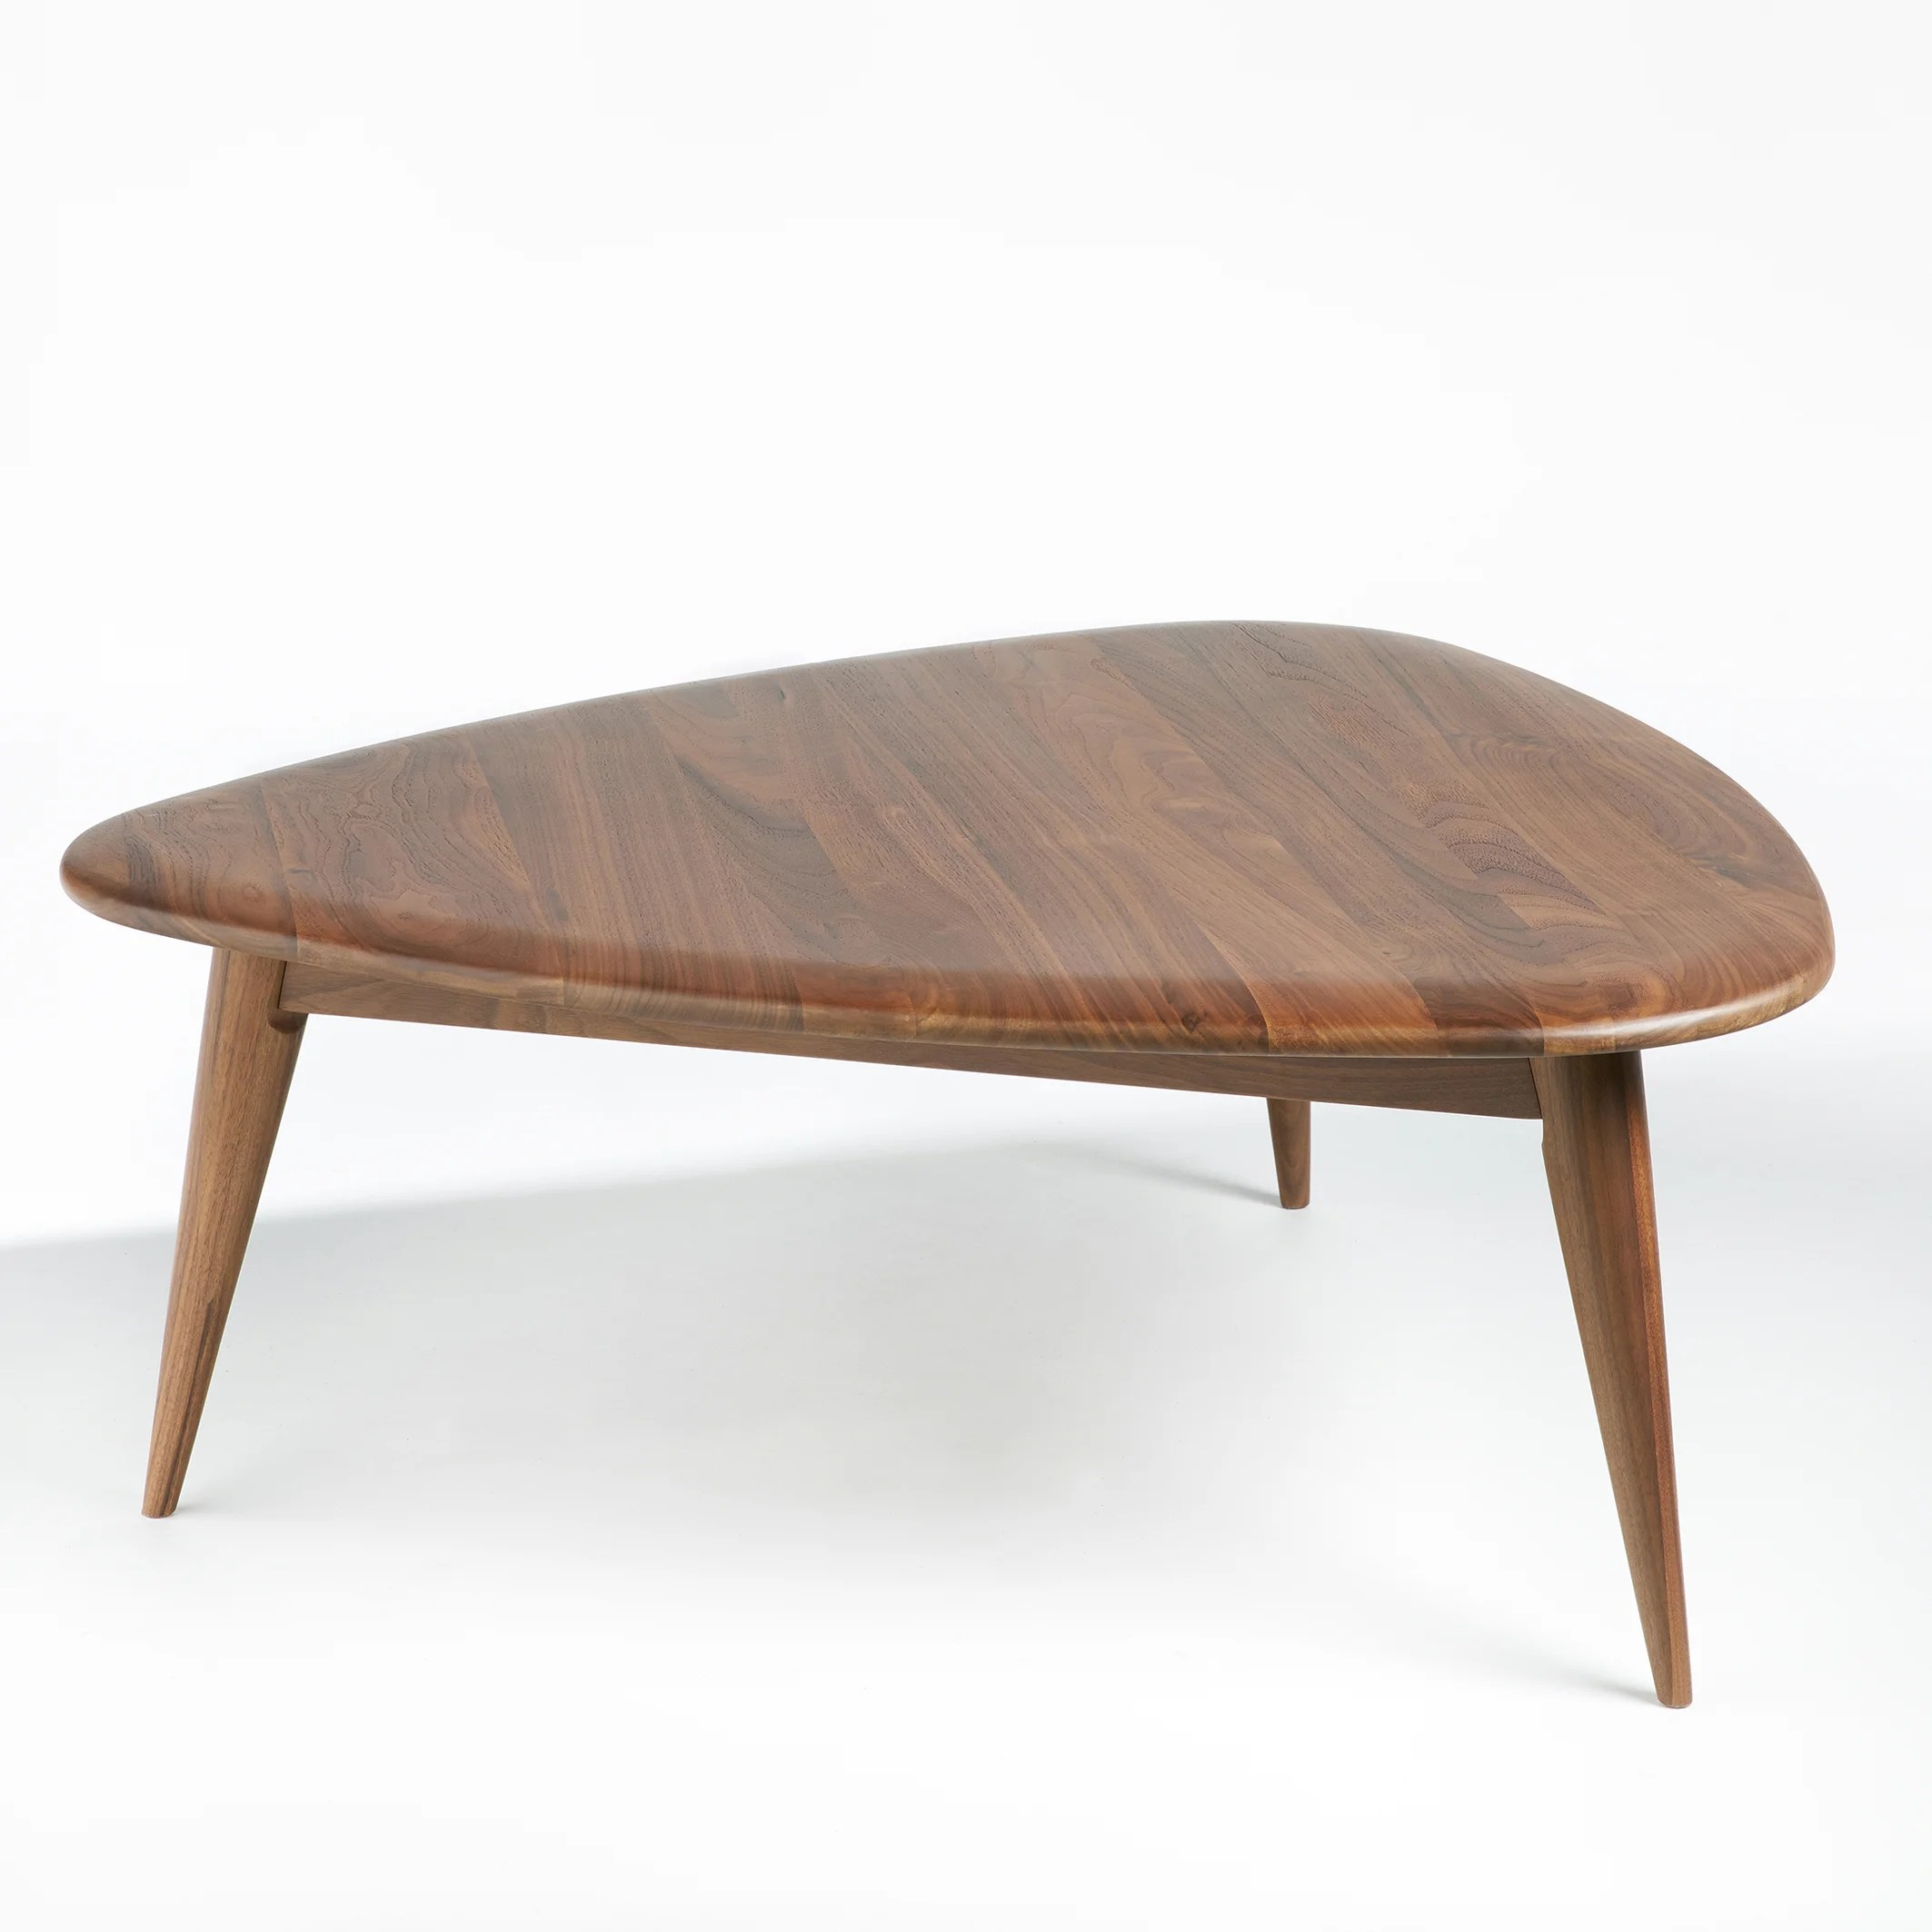 Theoleine Small Retro Style Coffee Table In Solid Walnut Walnut Am Pm La Redoute